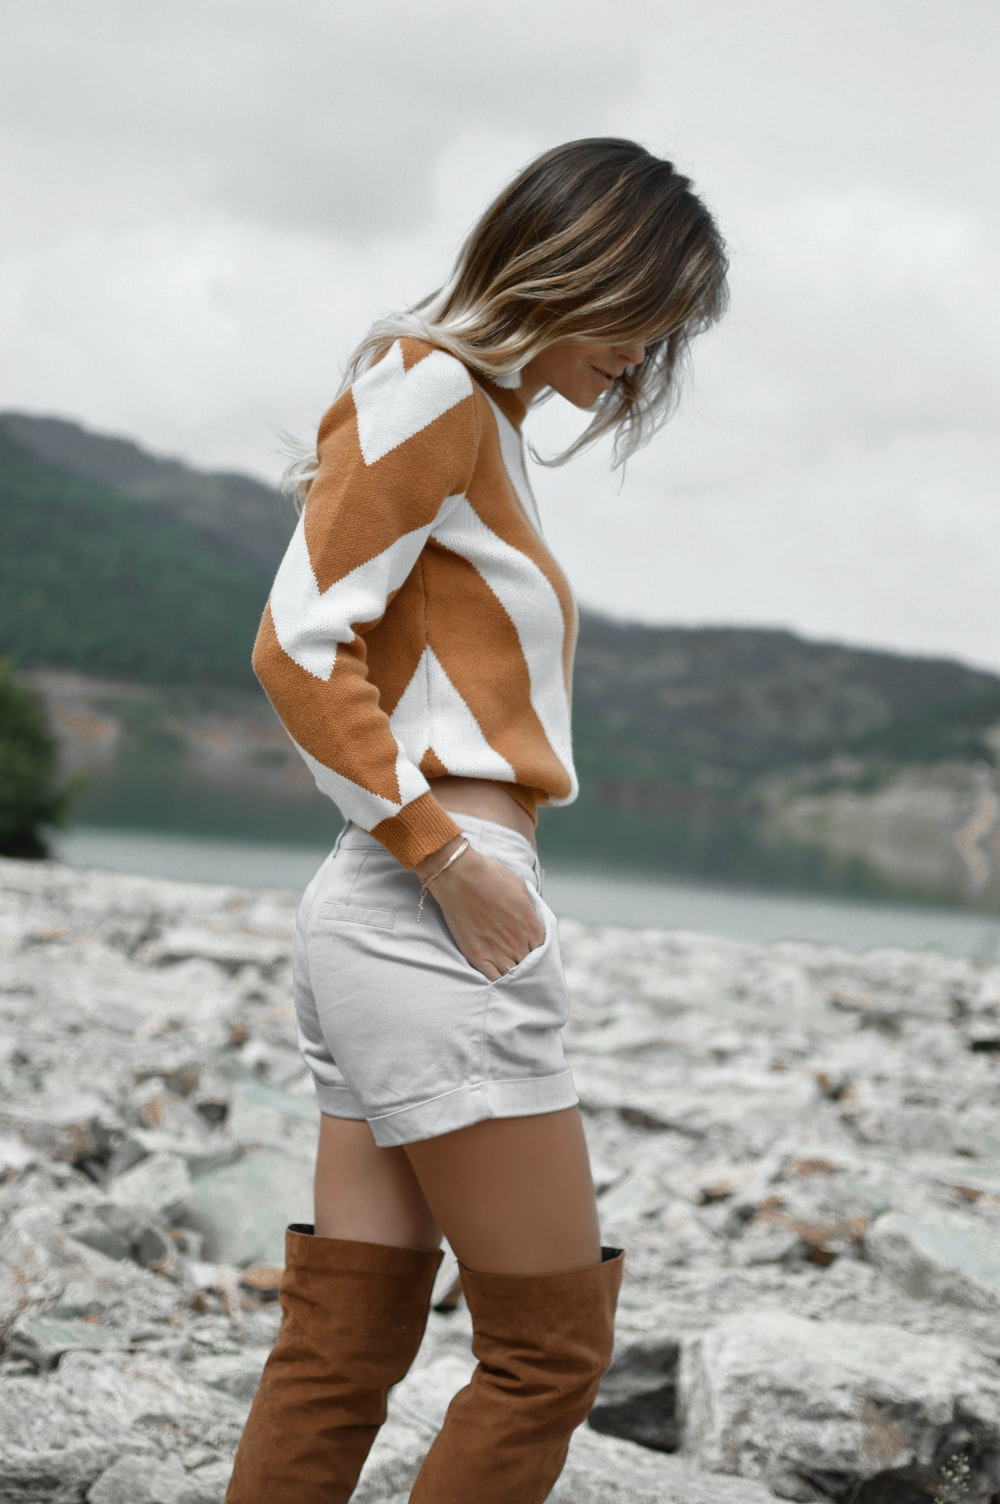 woman in white short shorts looking on rocks while putting her hand in pocket